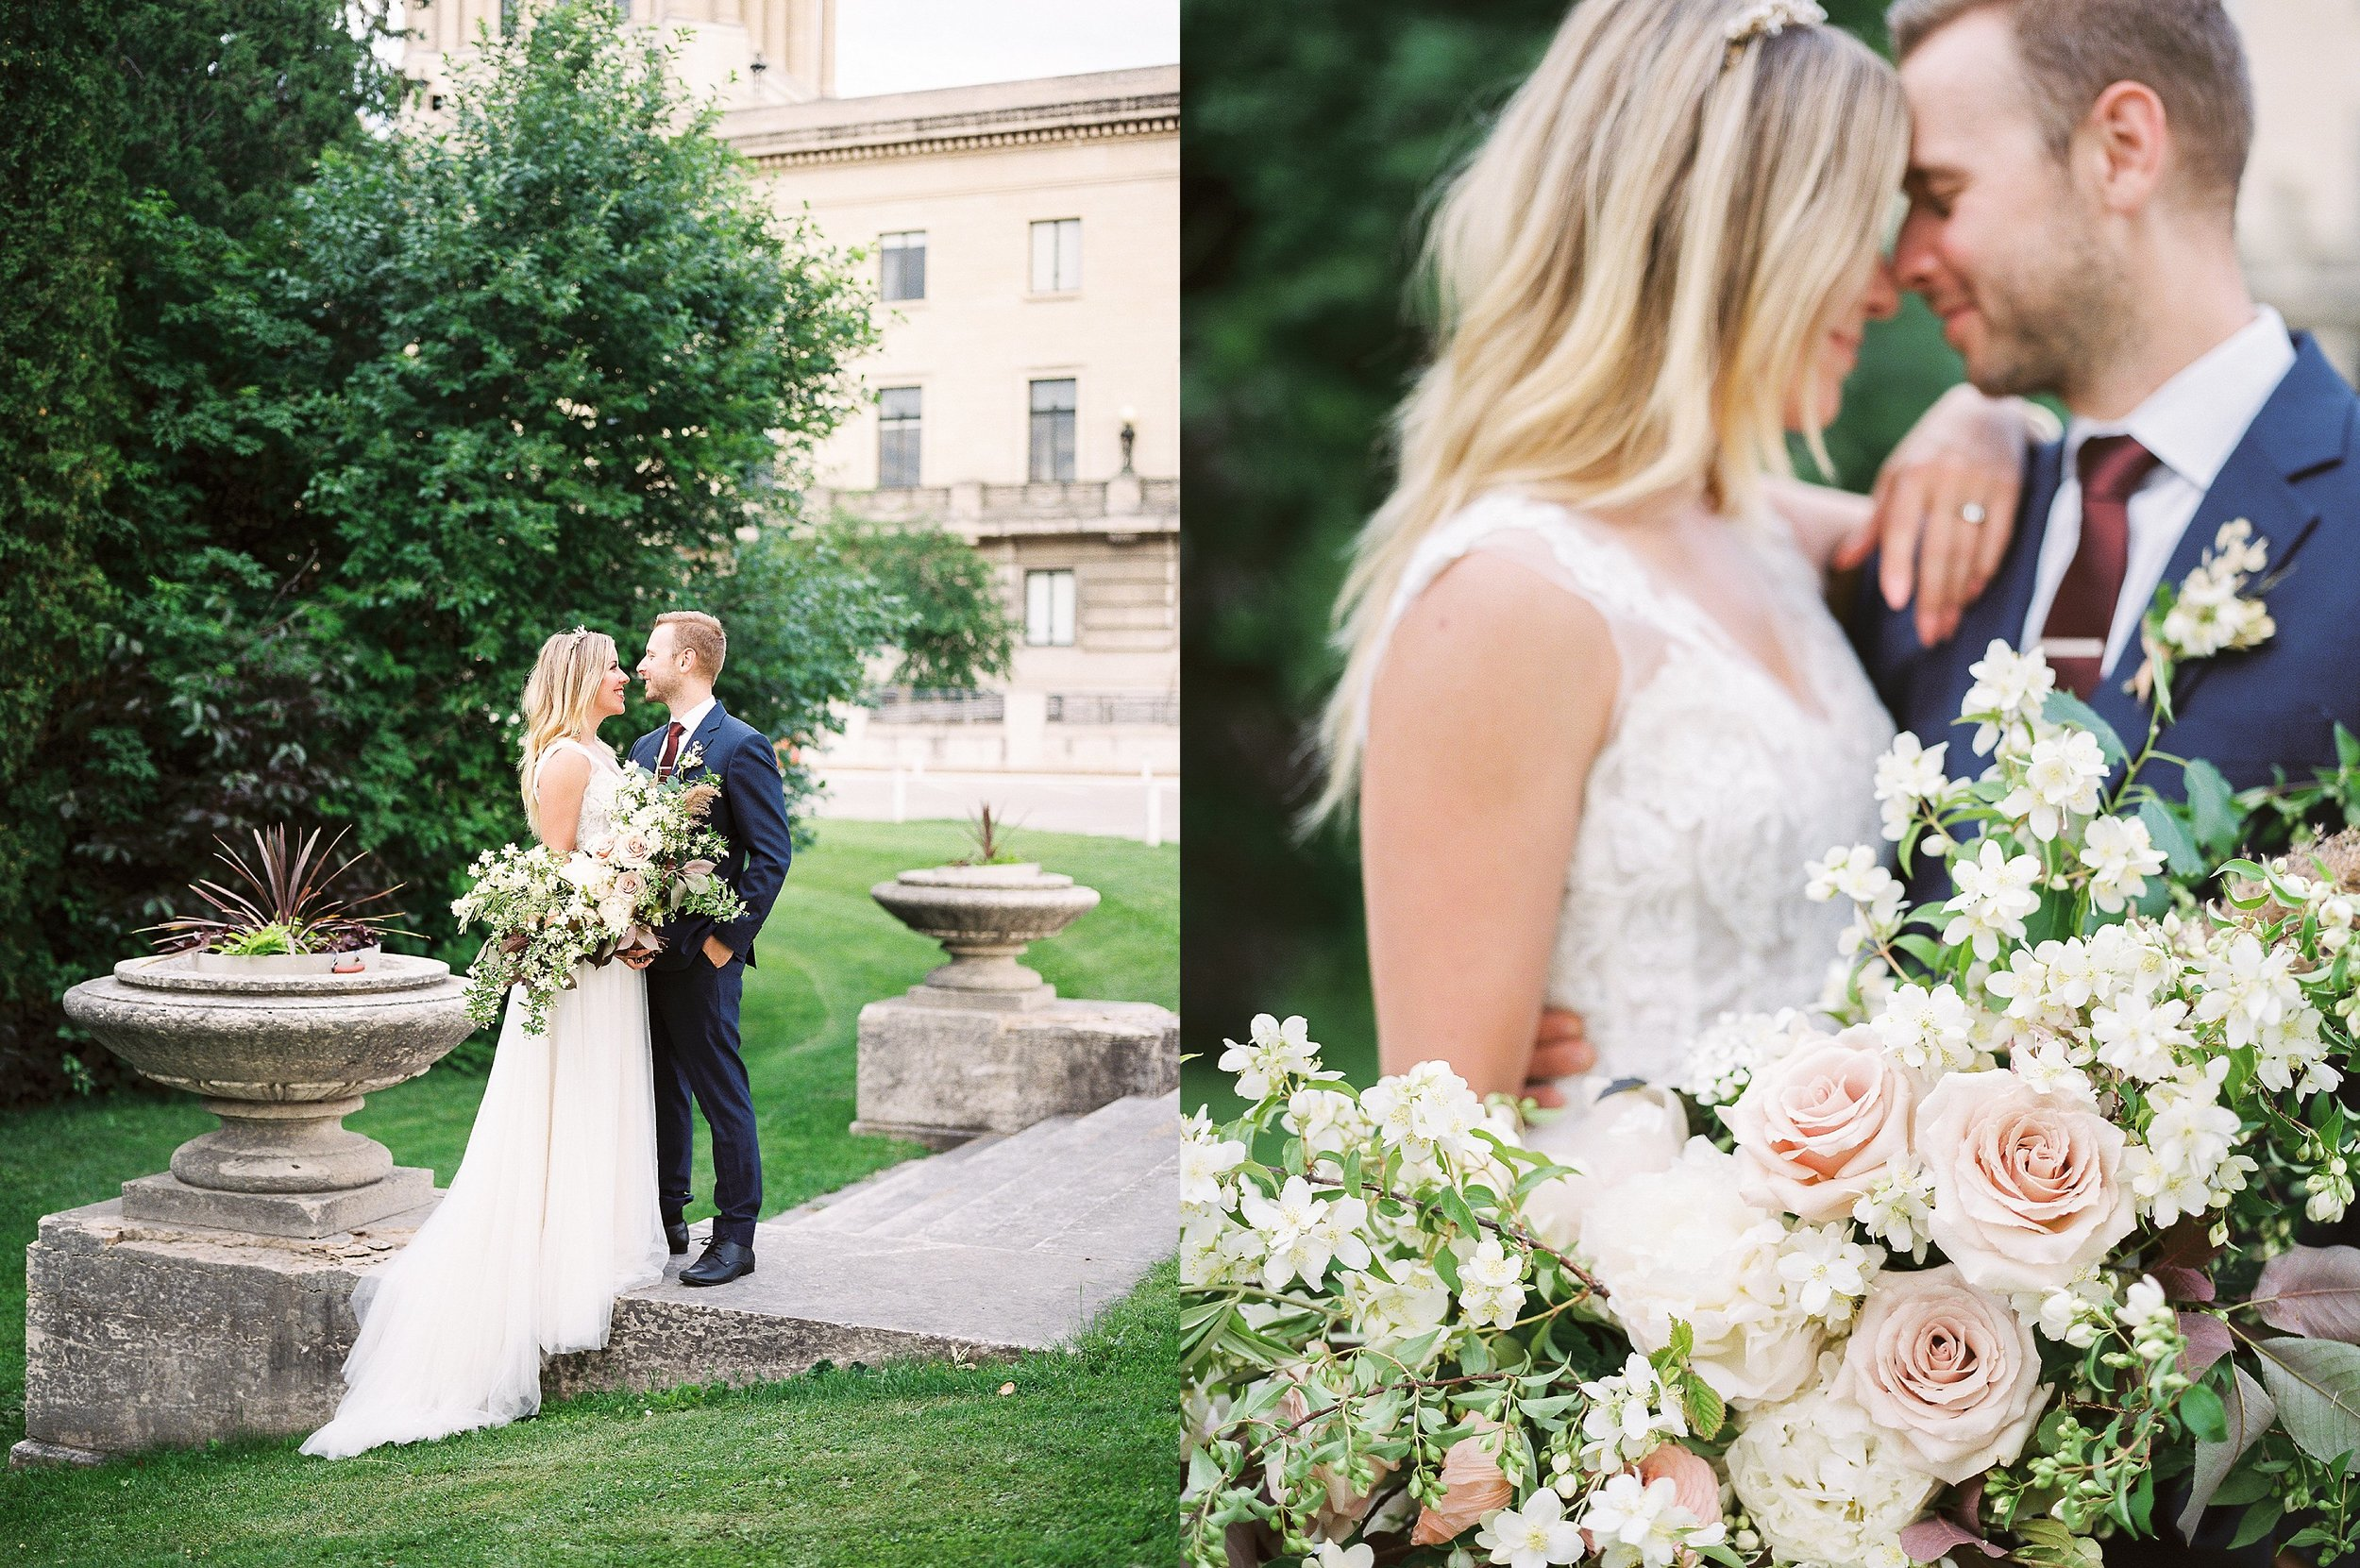 Wedding Photos taken at Manitoba Legislative Building | Winnipeg Wedding Photographer Keila Marie Photography